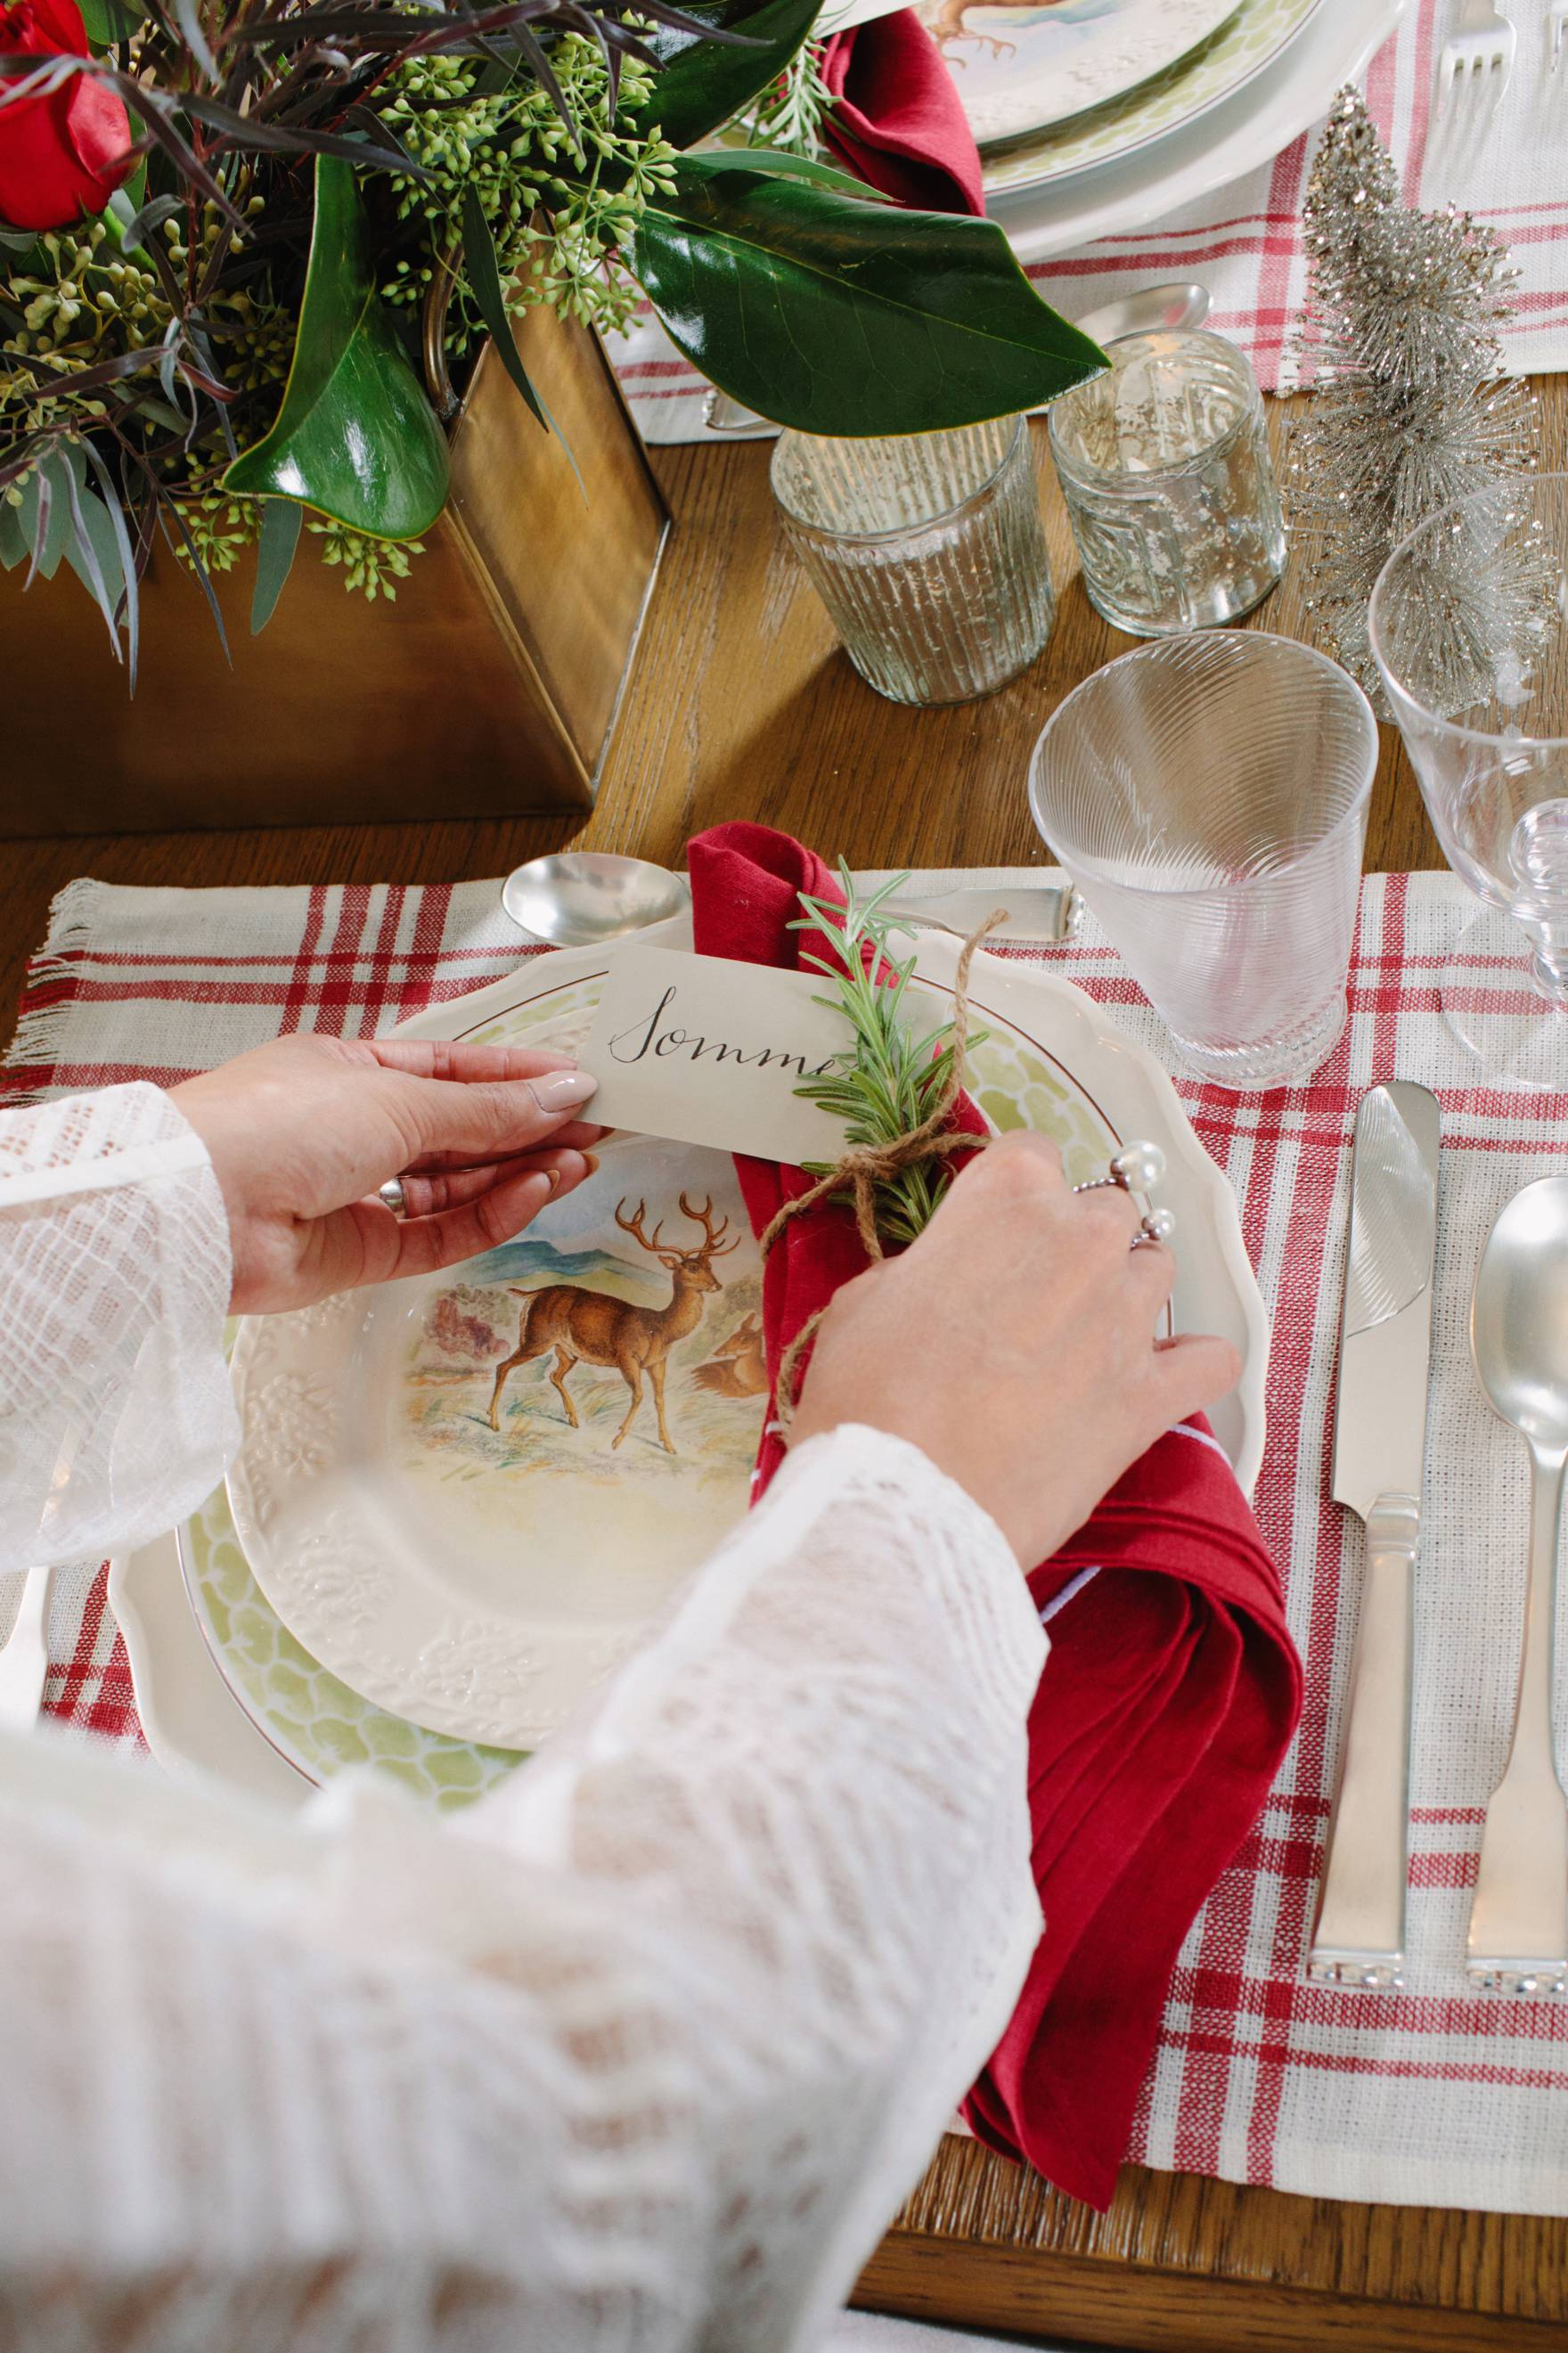 Christmas holiday tables cape inspiration red green and white Ballard Designs with blogger Diana Elizabeth red plaid placemat